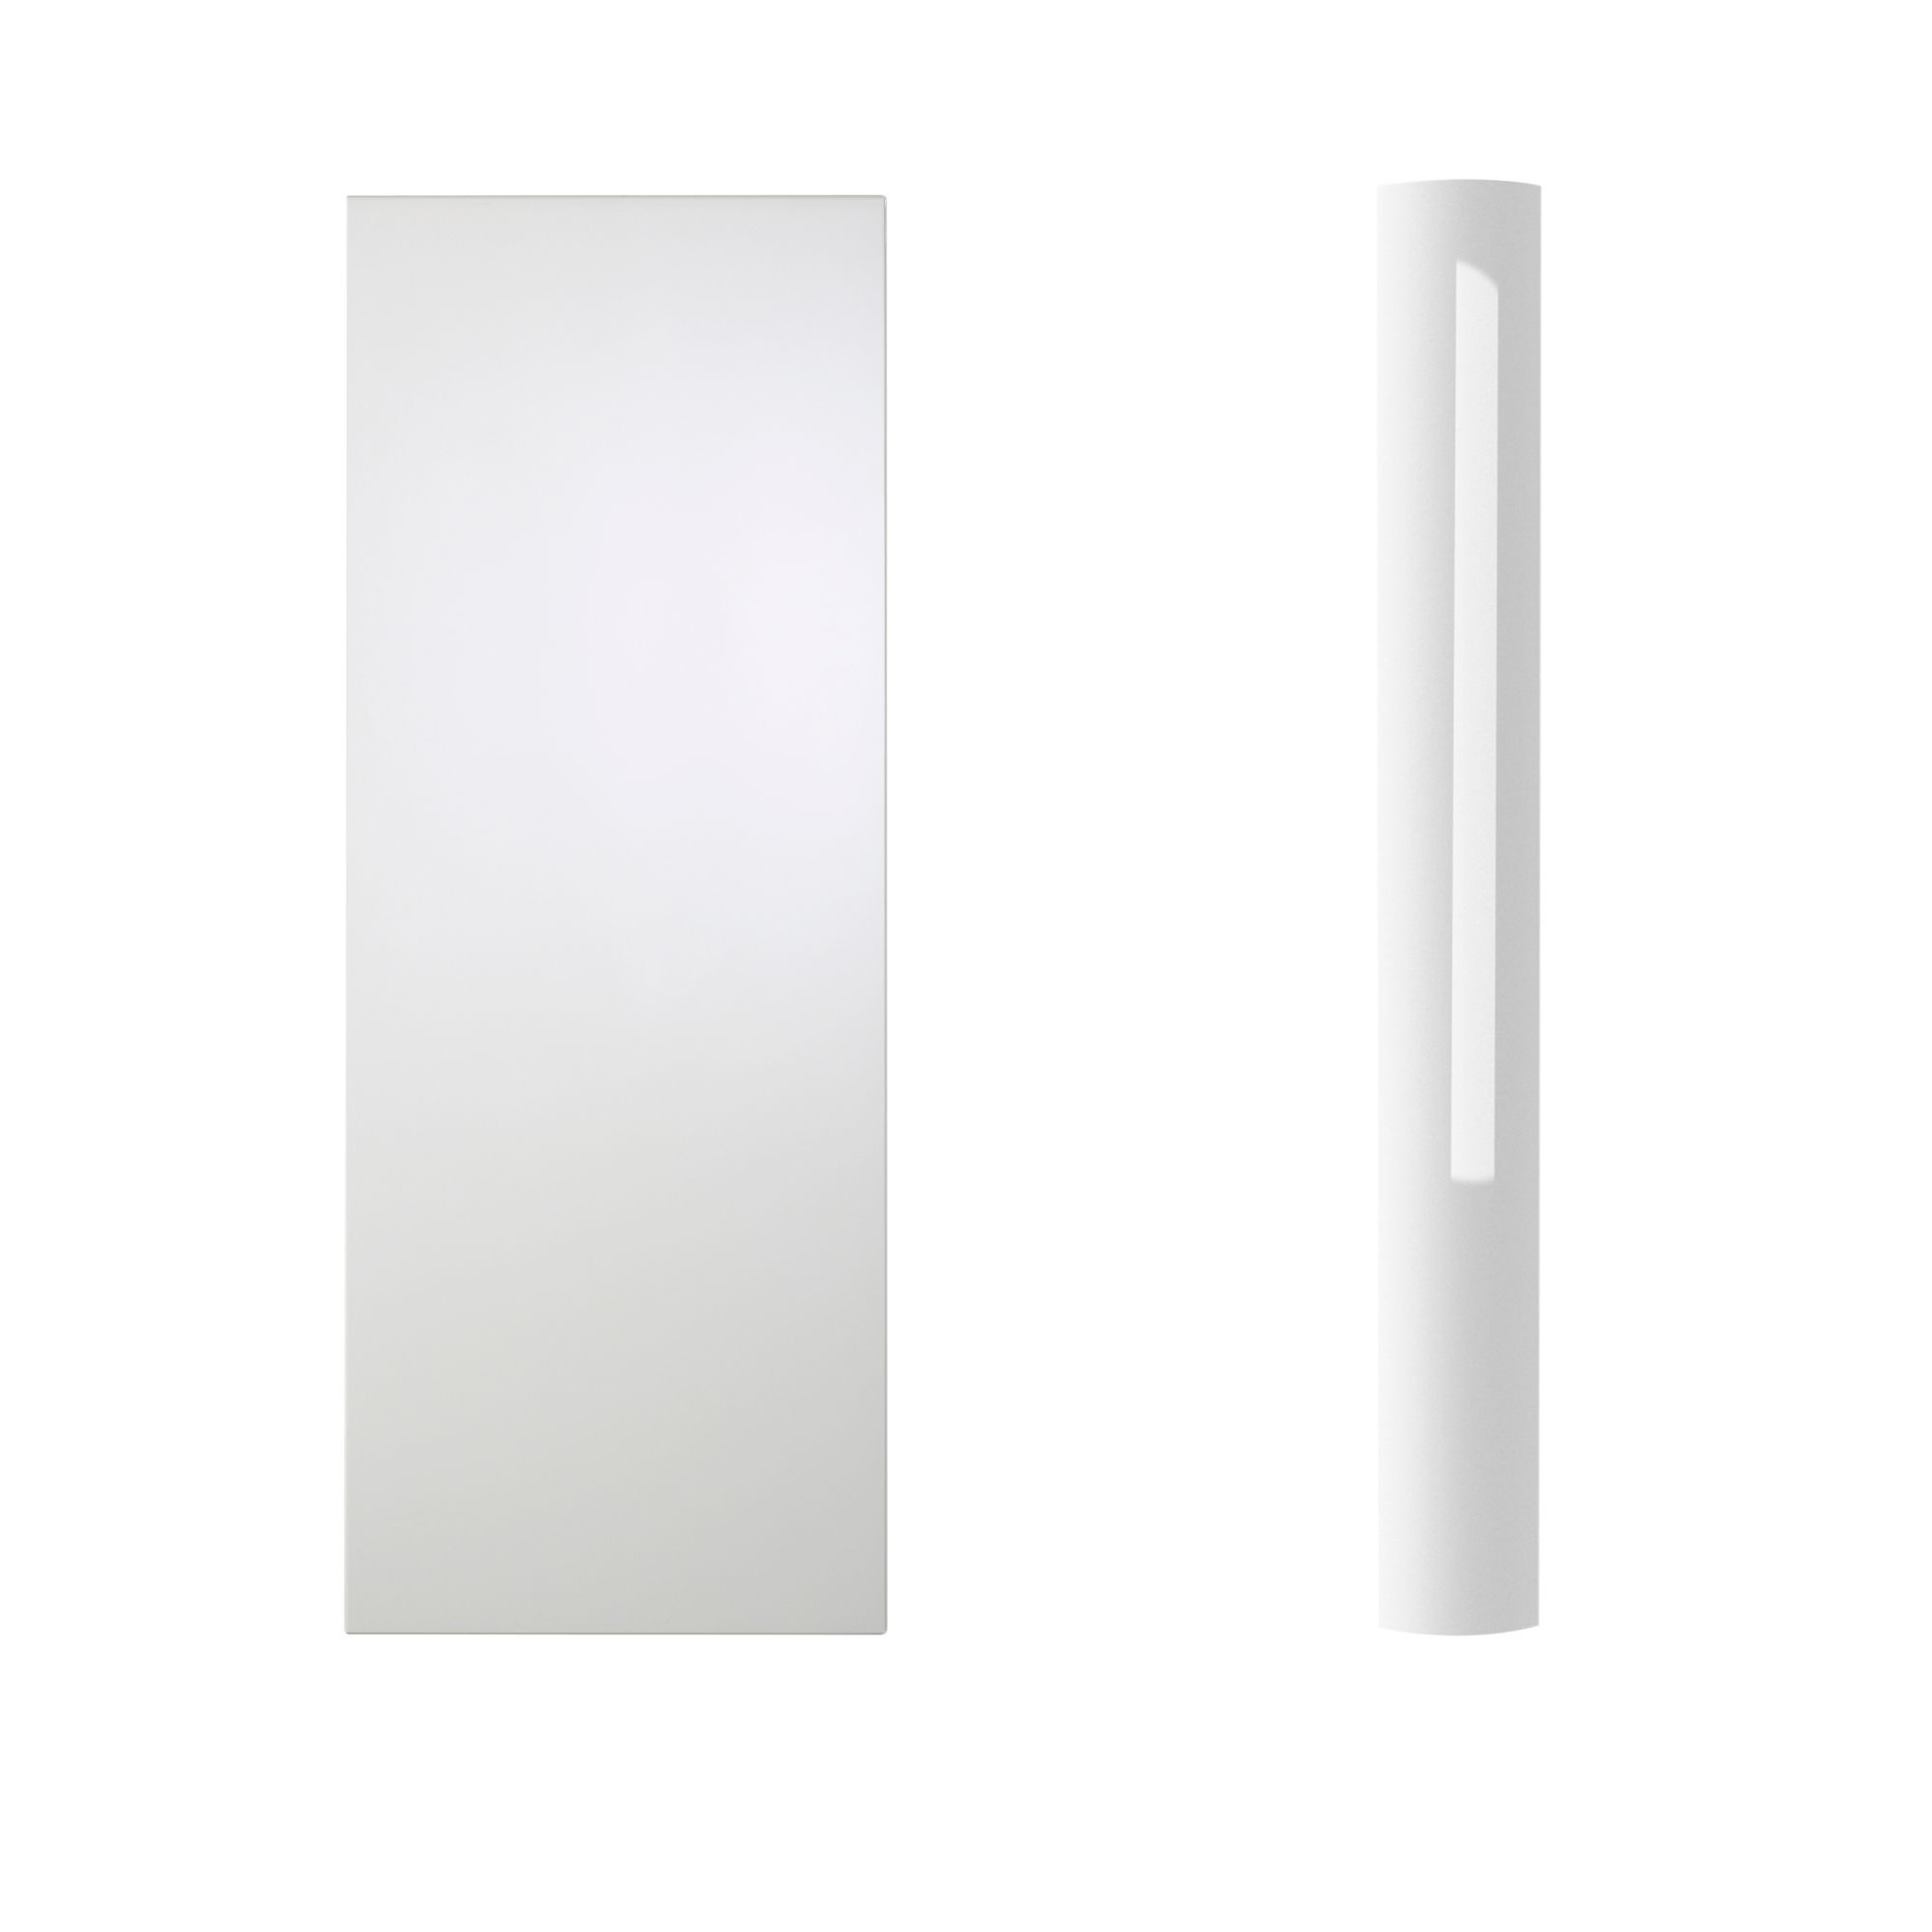 Cooke & Lewis High Gloss White Curved Tall Wall Pilaster & Panel (h)937mm (w)70mm (d)355mm